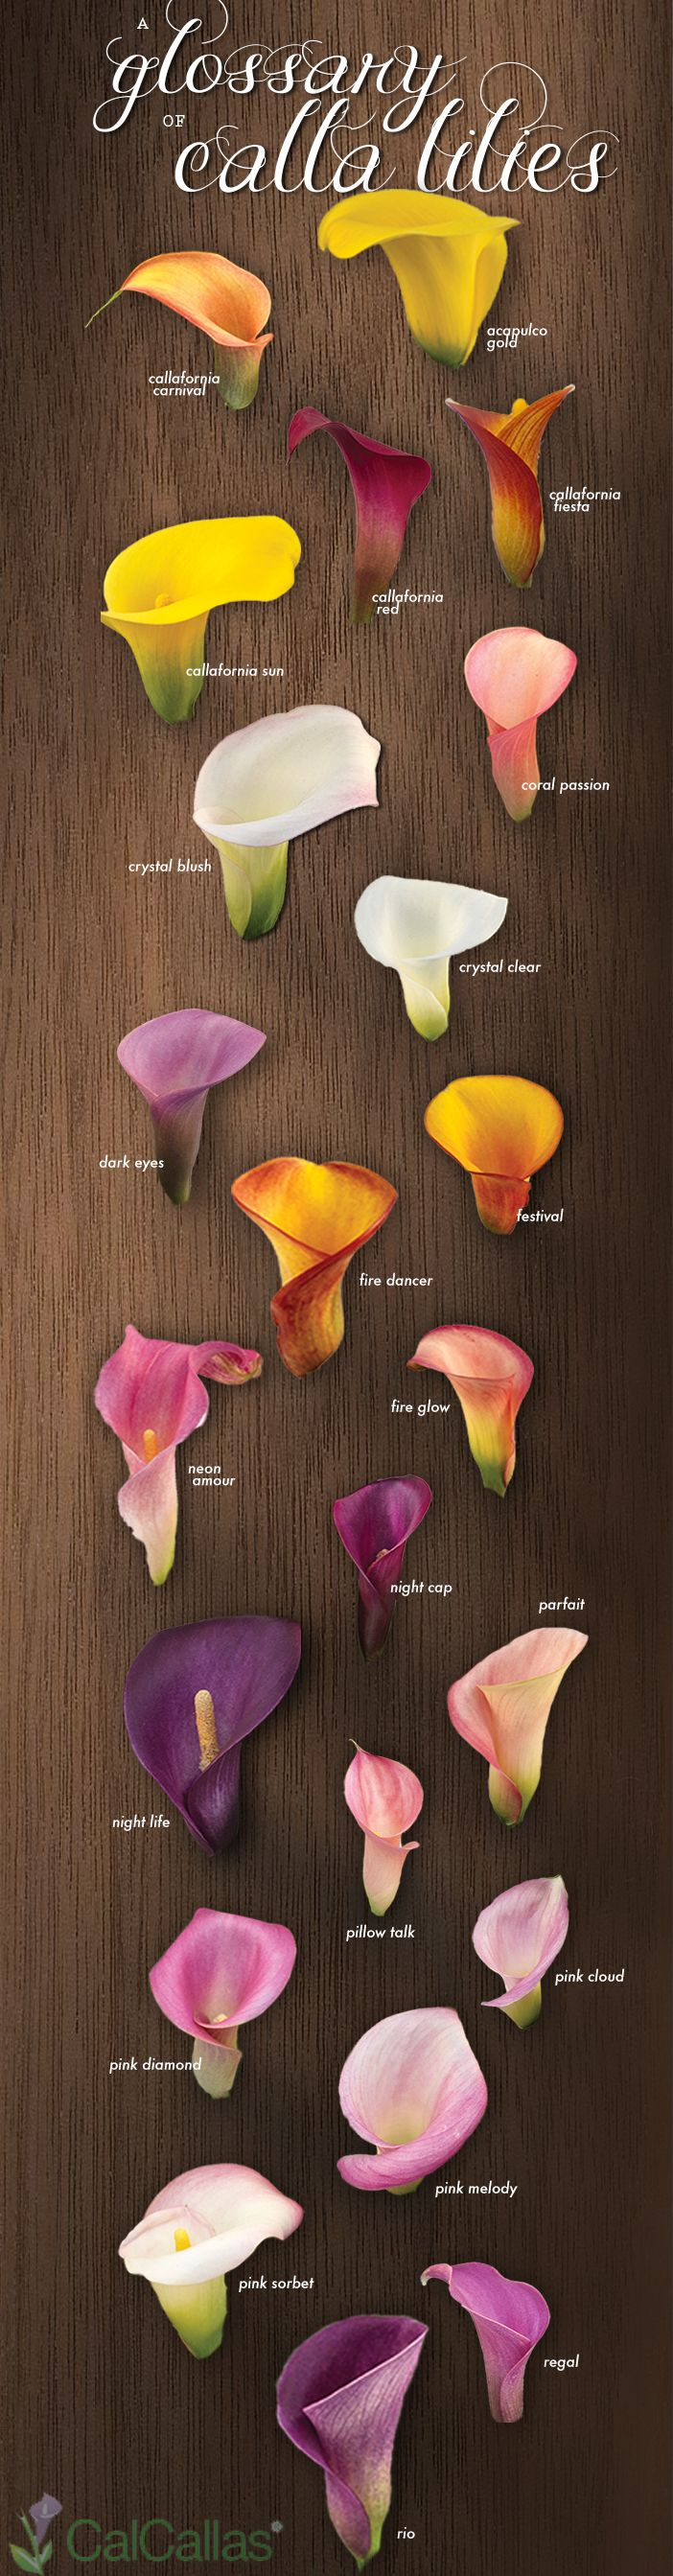 ~~A Glossary of Colored Calla Lilies - Mini Calla Lily Colors | CalCallas~~: